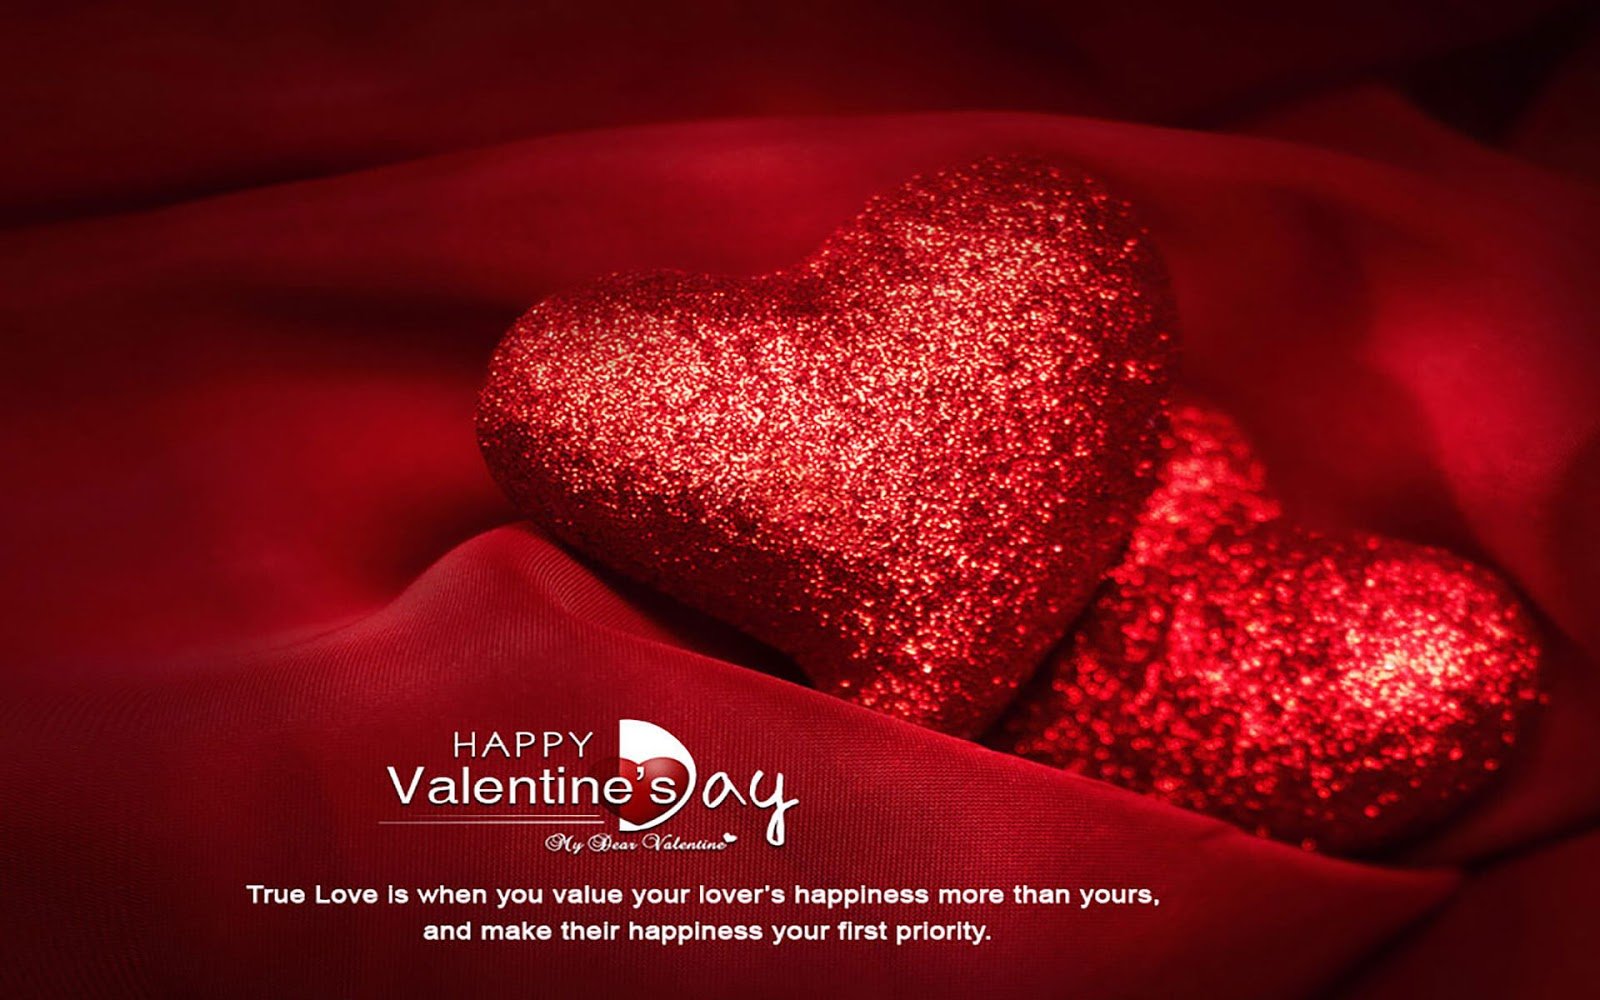 Happy Valentines day 2019 Quotes Wallpaper